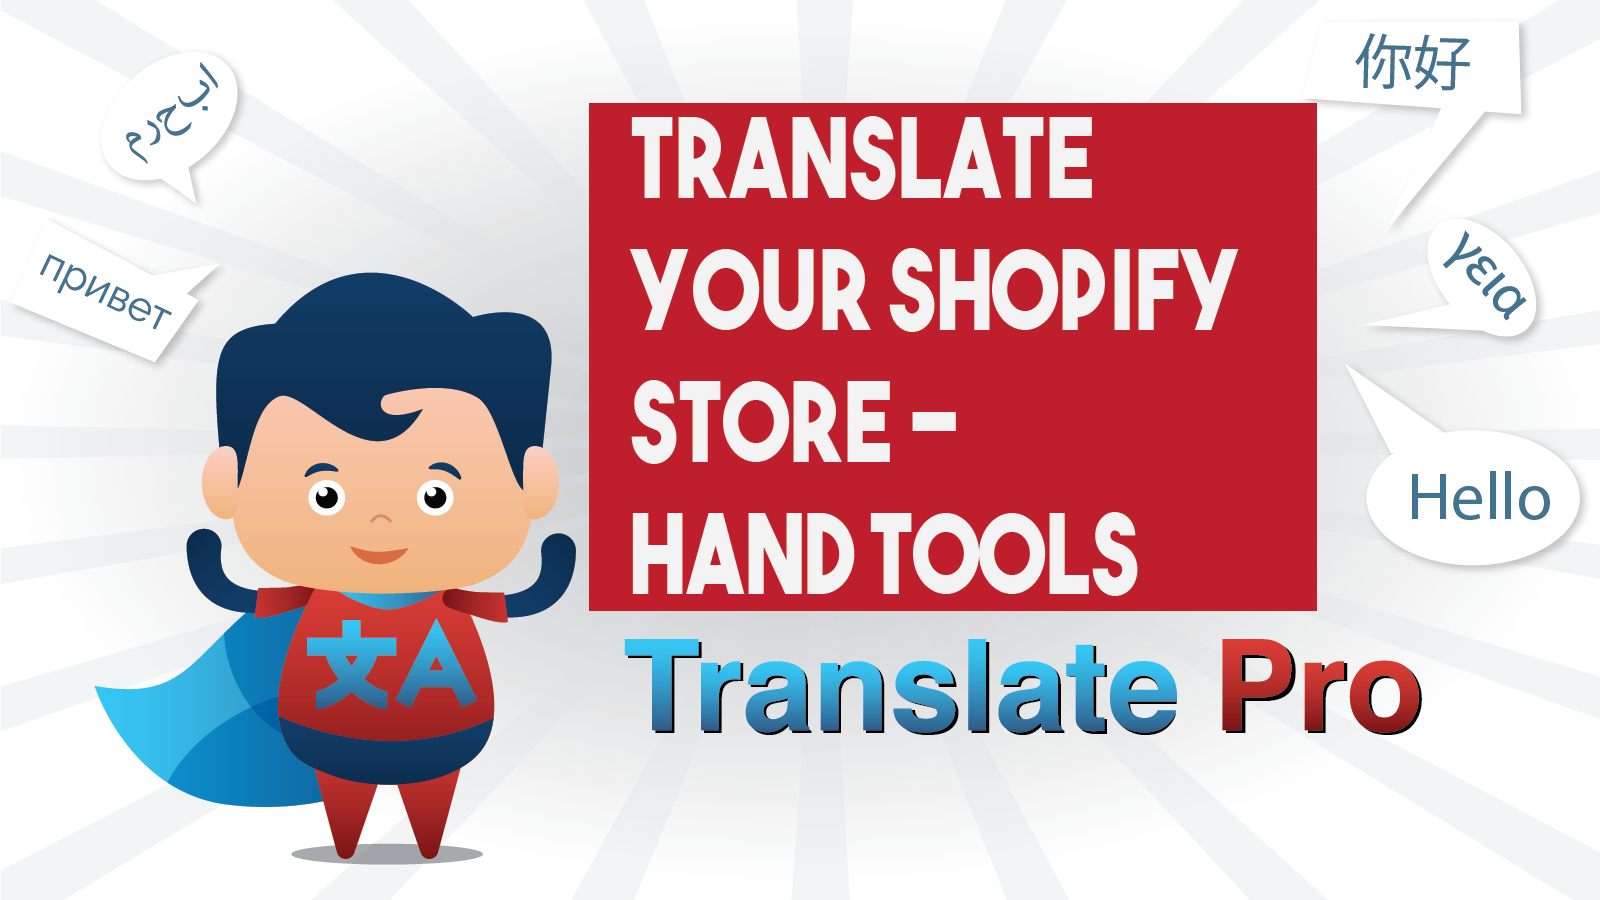 How To Translate Your Shopify Hand Tools Store